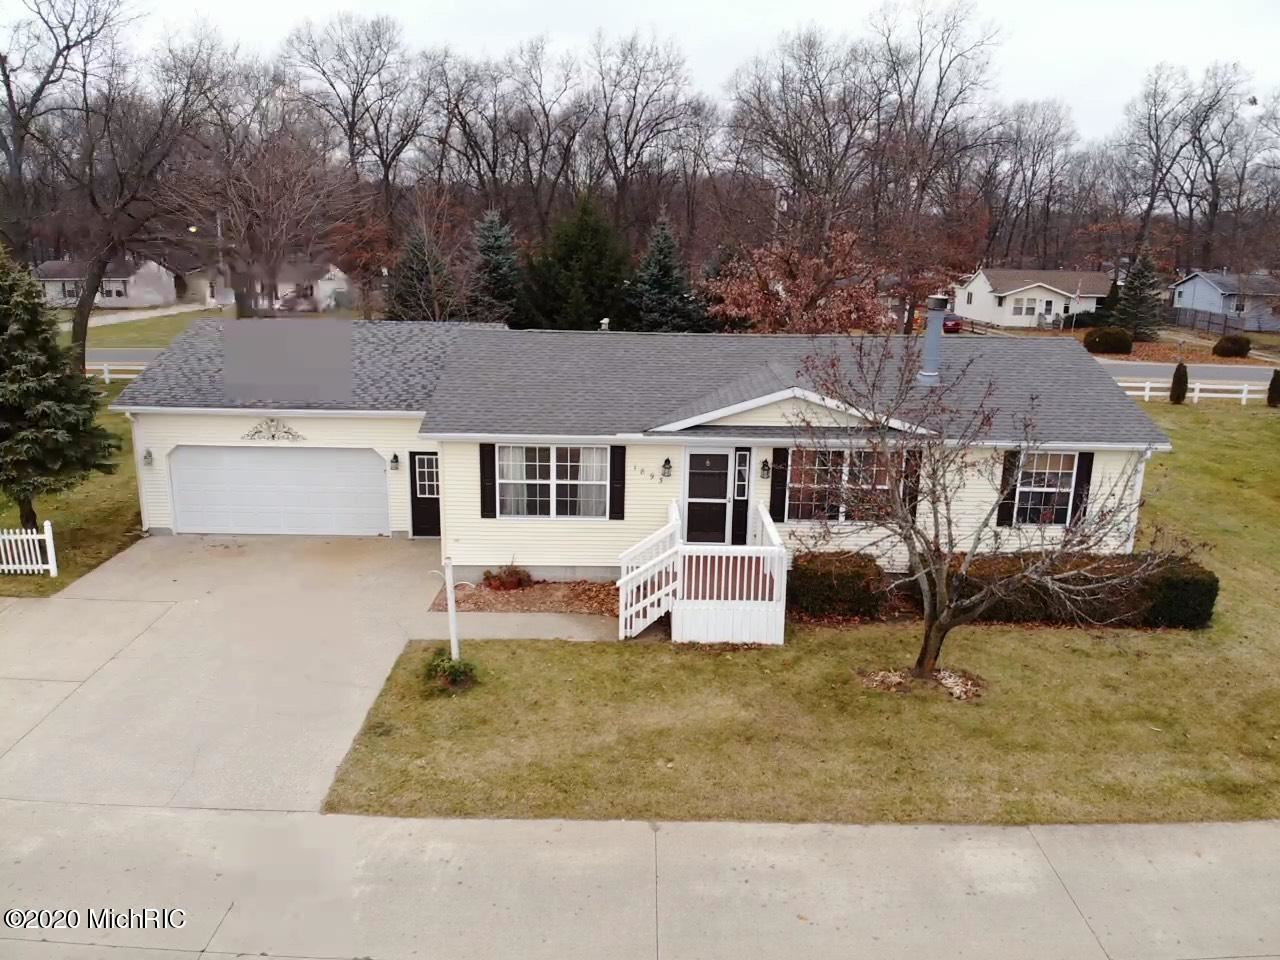 1893 Latas Lane, Muskegon, MI 49442 - MLS#: 21002447